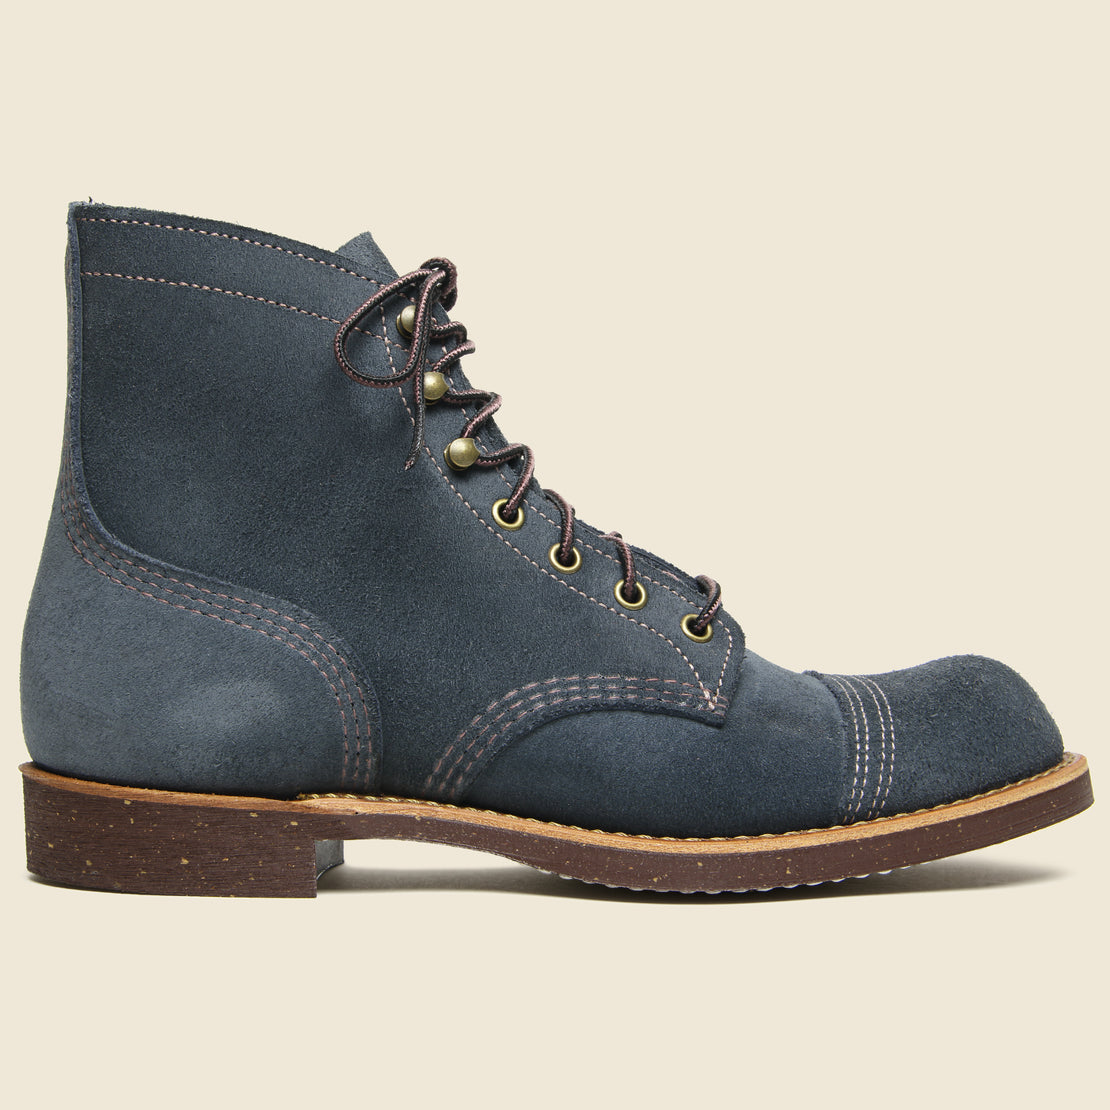 Red Wing Iron Ranger No. 8117 - Navy Abilene Roughout